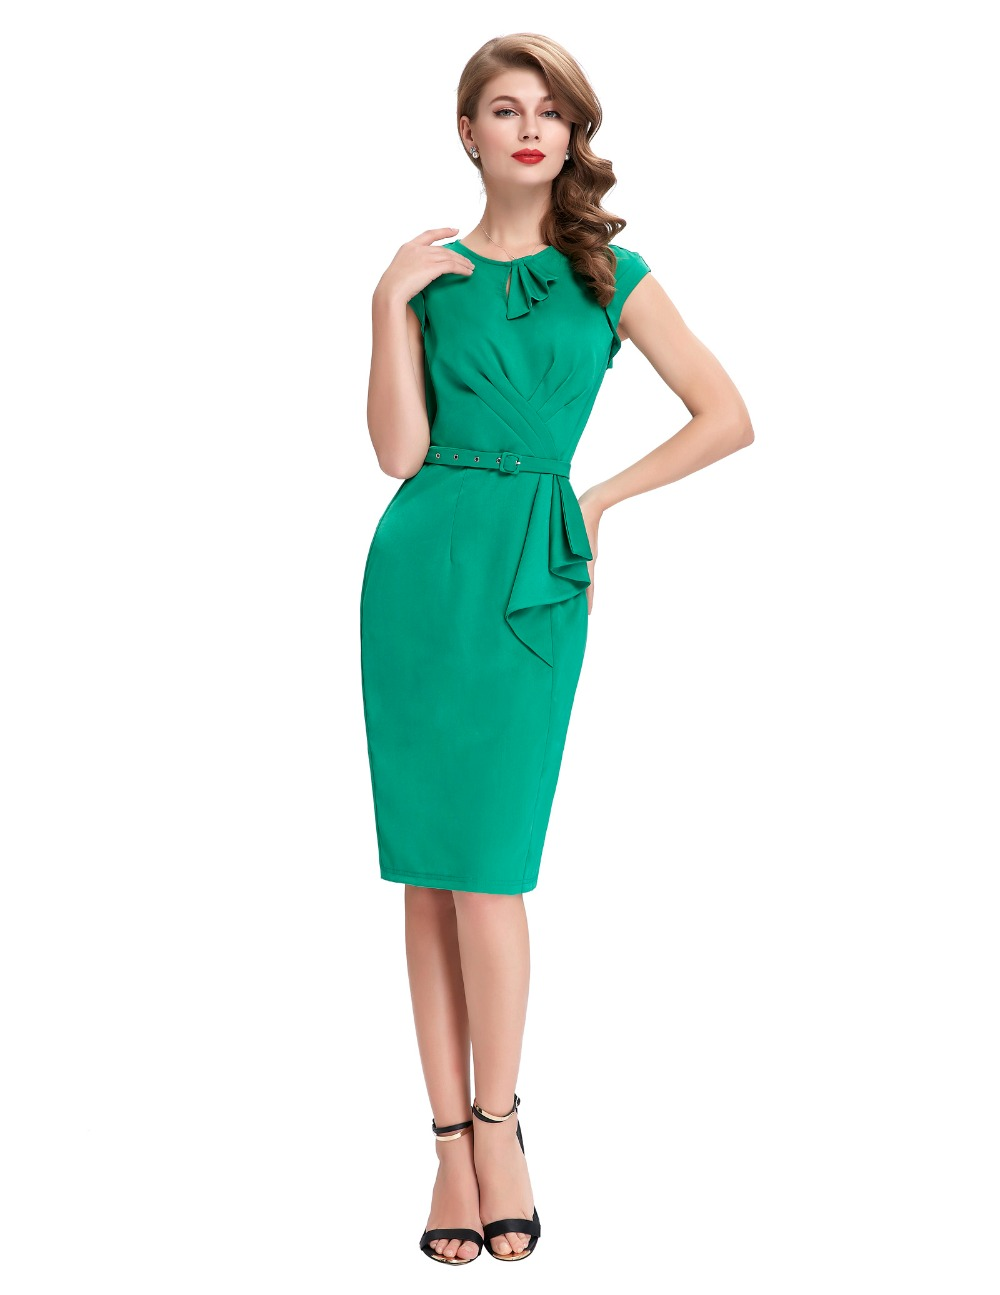 Short Prom Dresses Vintage Green Pencil Dress Robe Femme Belle ...